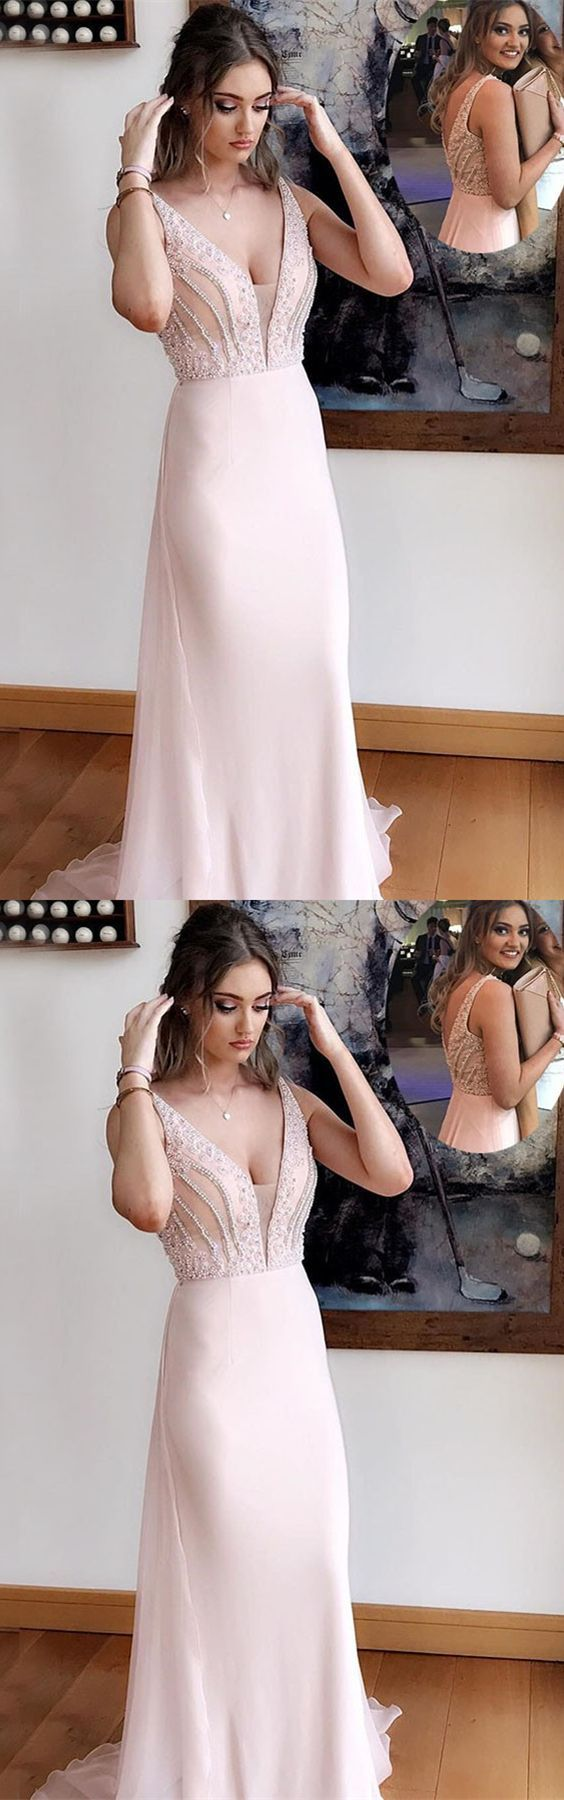 Elegant V-Neck A-Line Prom Dresses,Long Prom Dresses,Cheap Prom Dresses, Evening Dress Prom Gowns, Formal Women Dress,Prom Dress, D0132